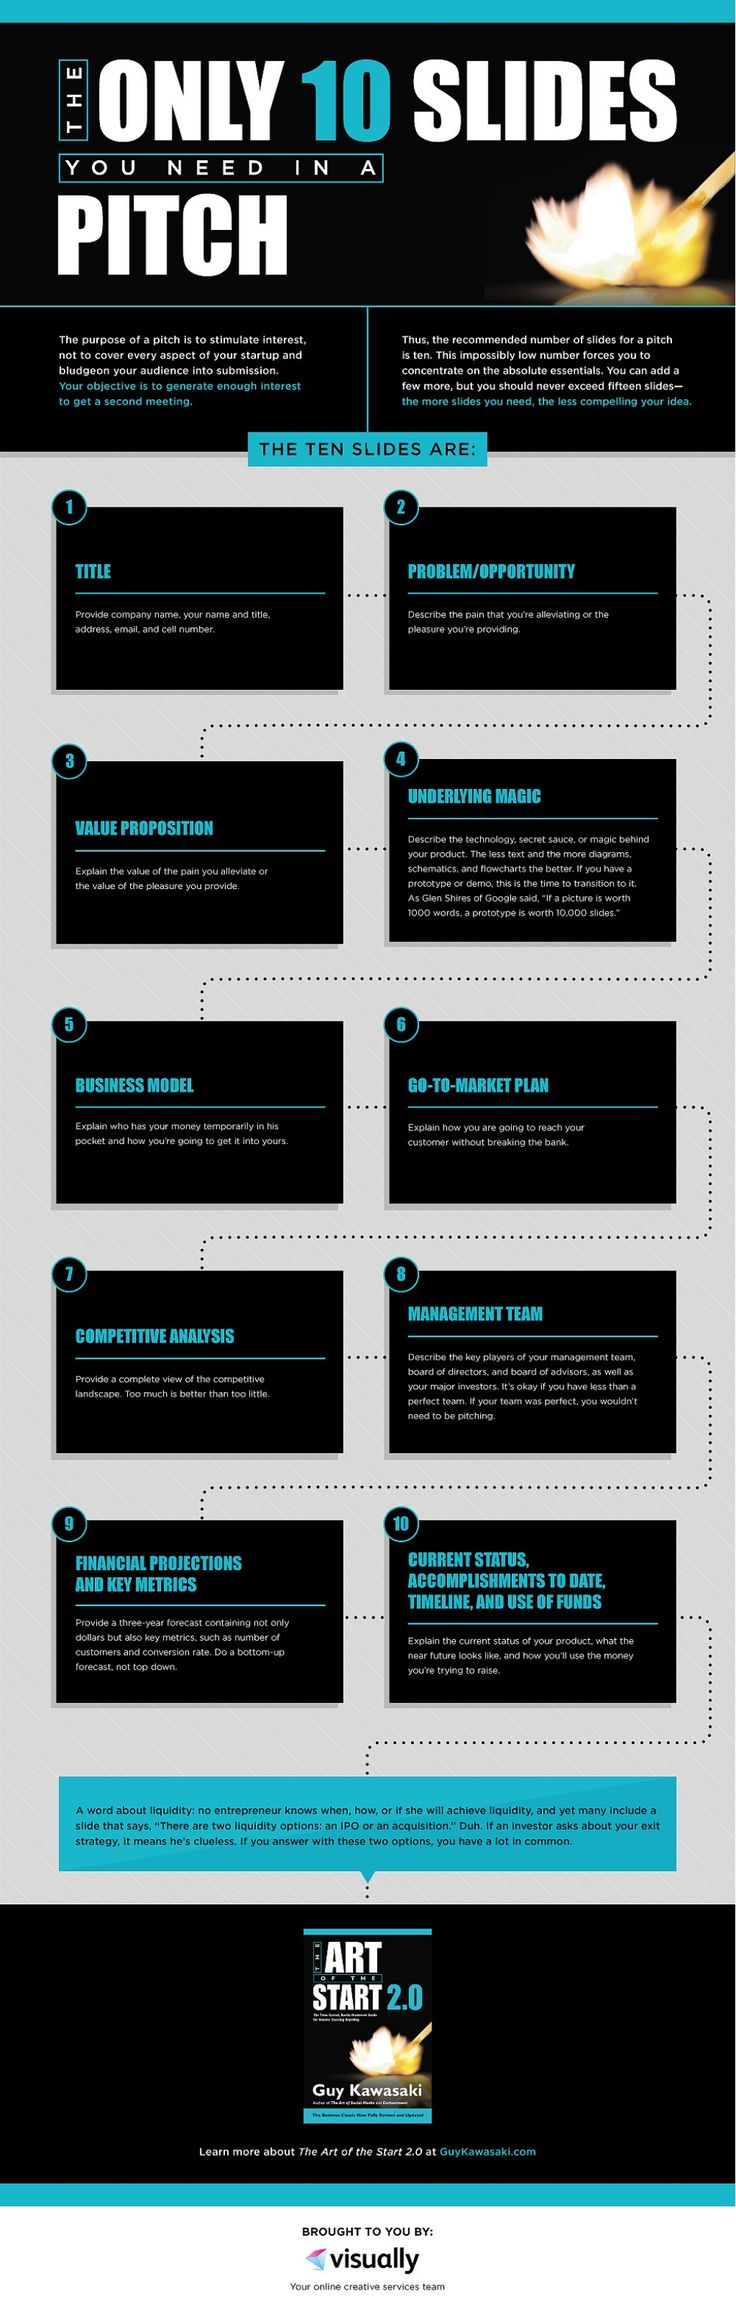 The Only 10 Slides You Need in Your Pitch Deck from The Art of the Start 2.0 by Guy Kawasaki via slideshare